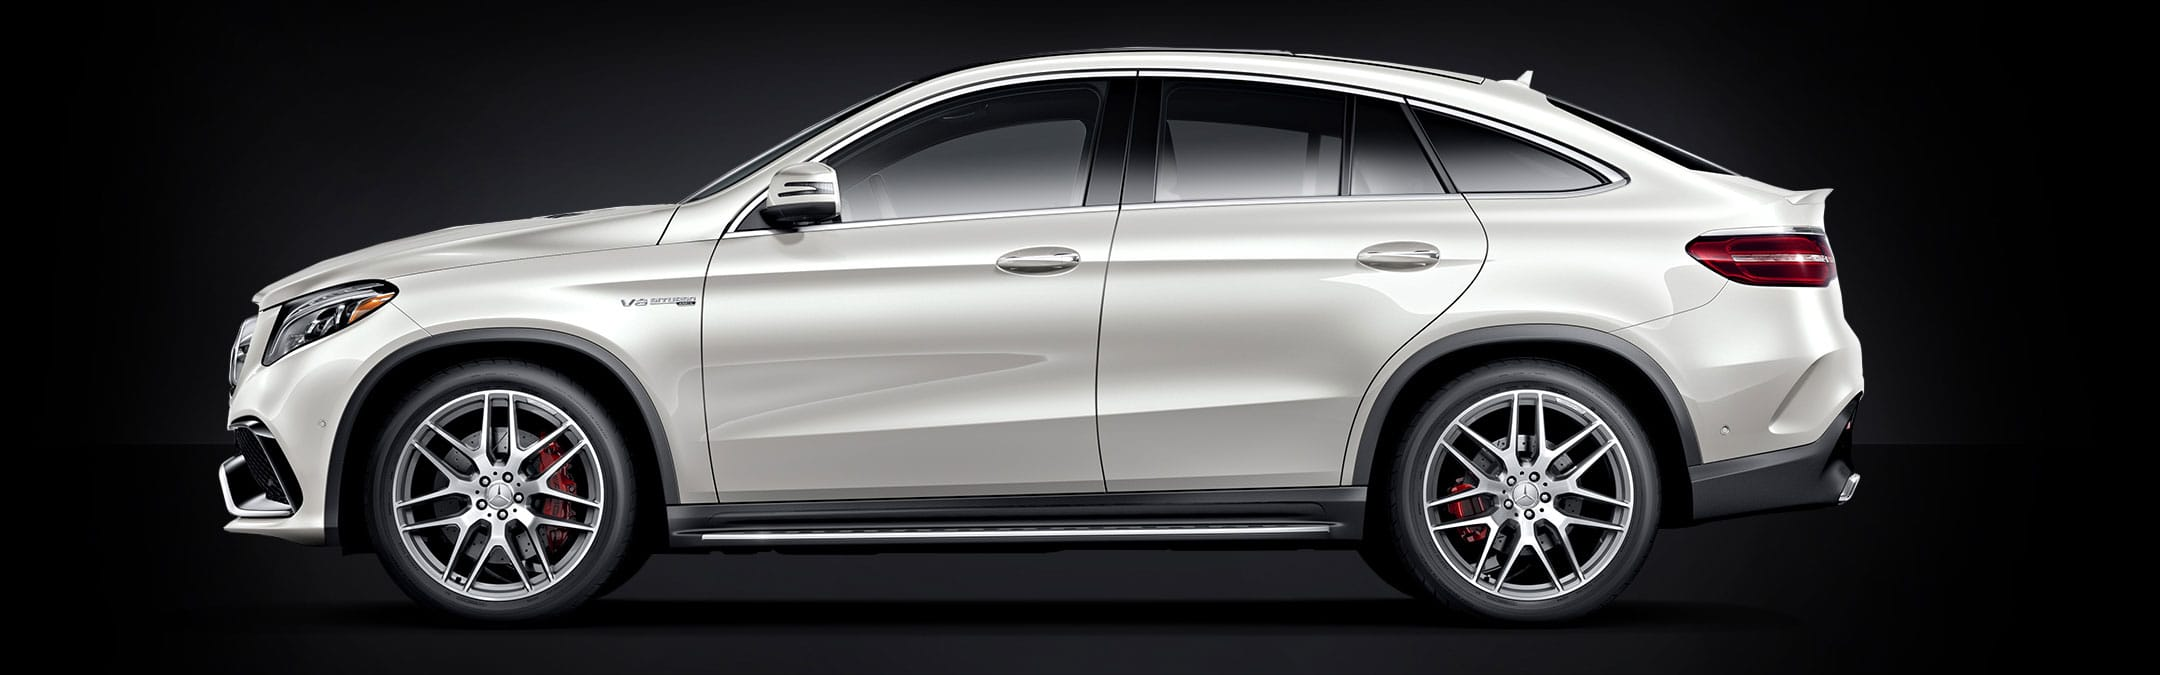 2019 Mercedes Amg Gle Coupe Design